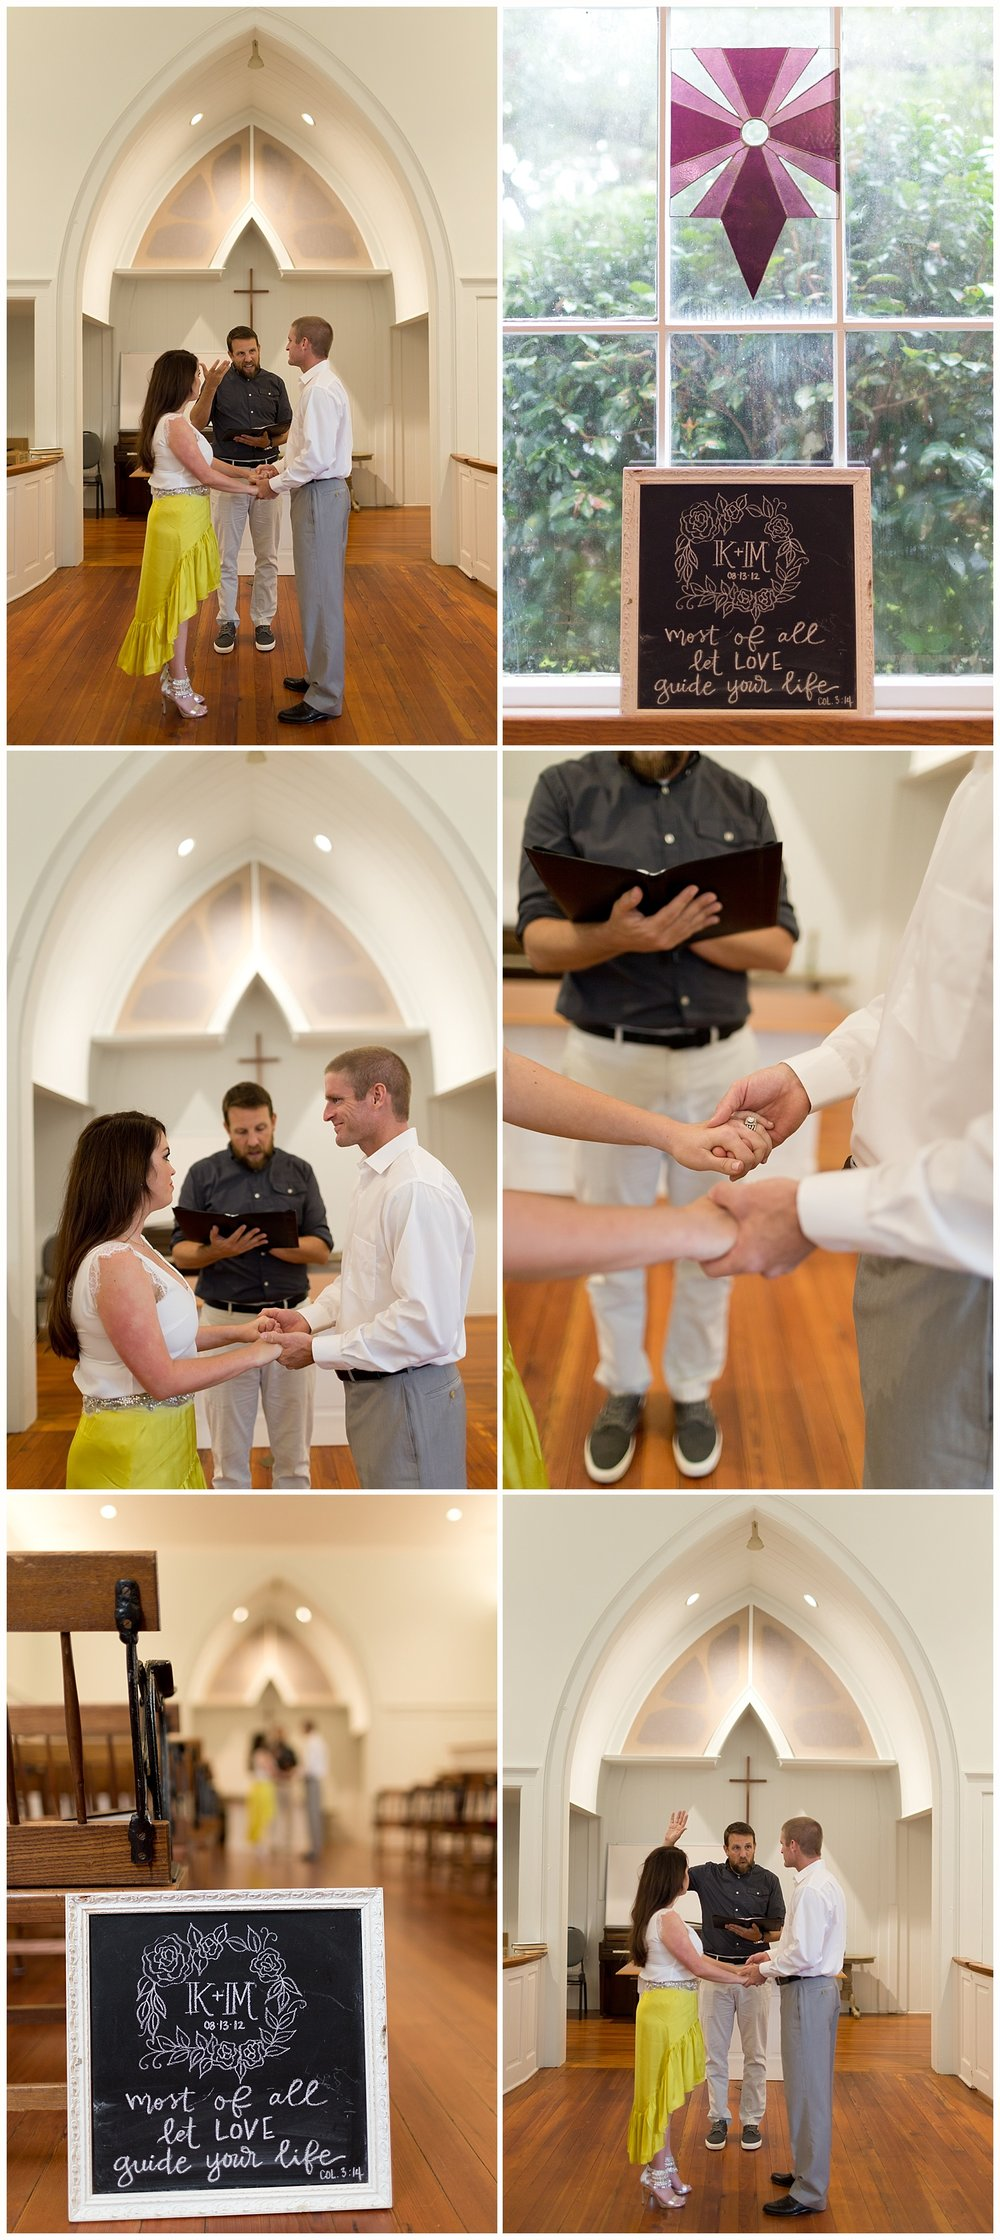 private vow renewal ceremony at First Presbyterian Church in Ocean Springs, Mississippi